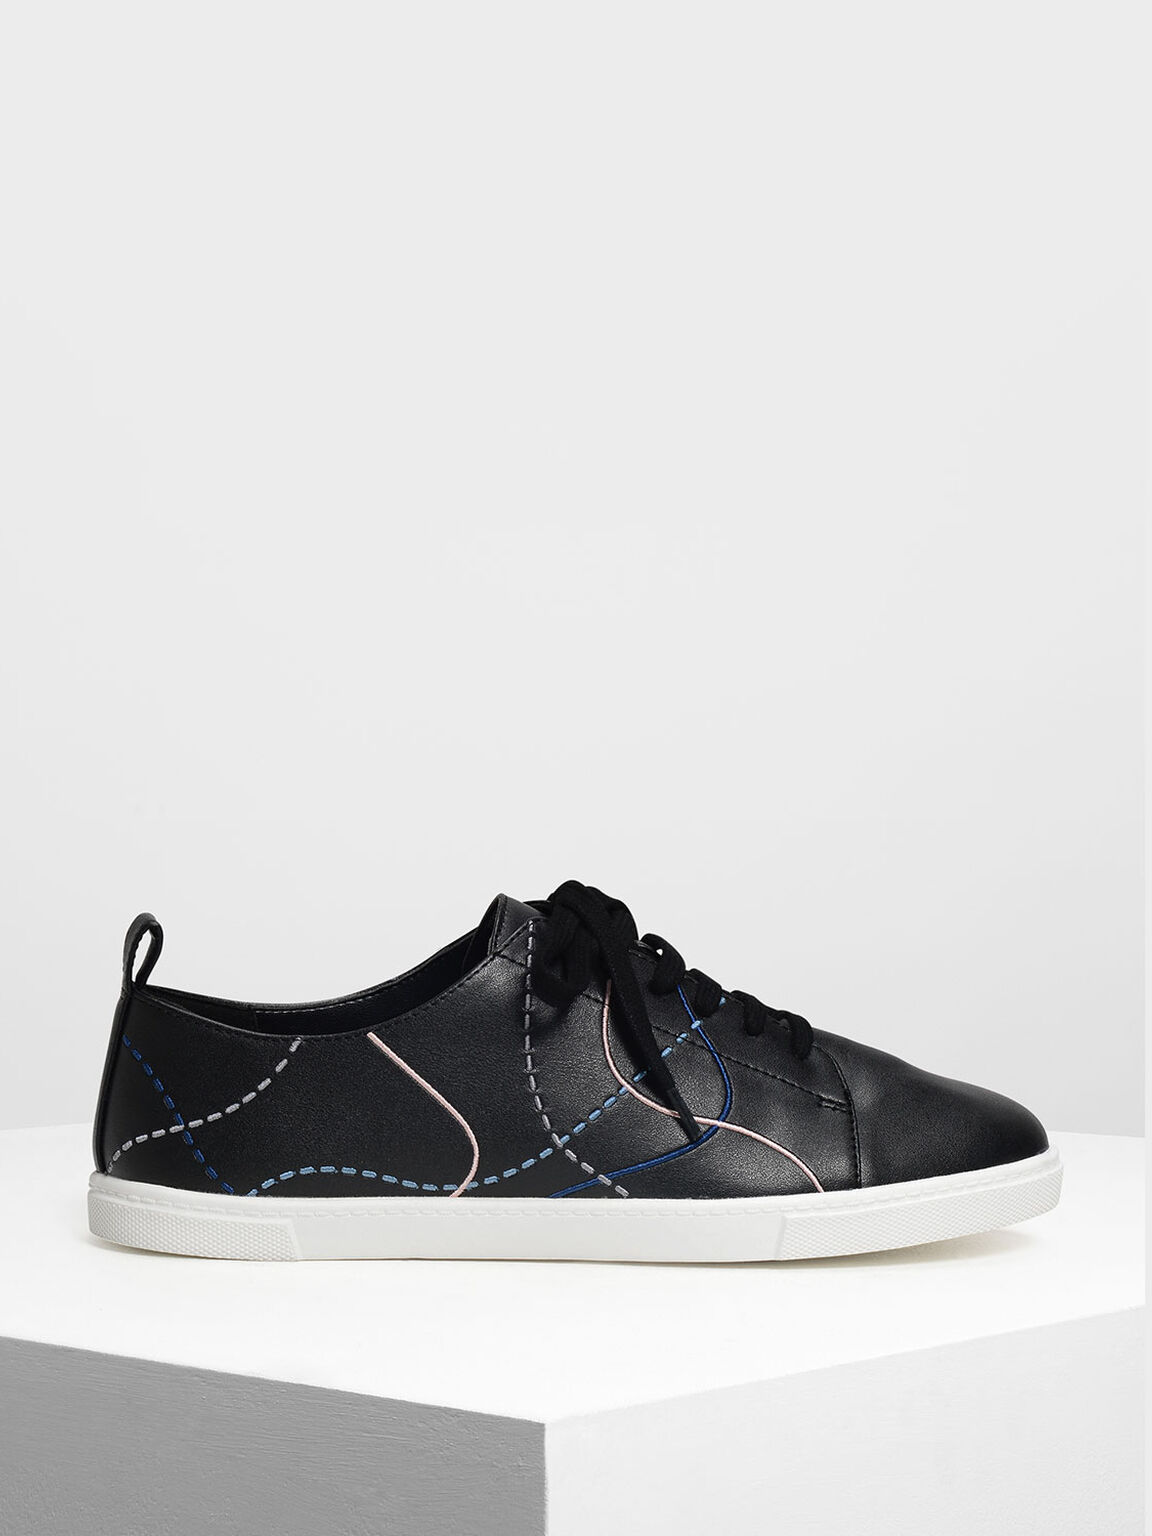 Line Detail Sneakers, Black, hi-res